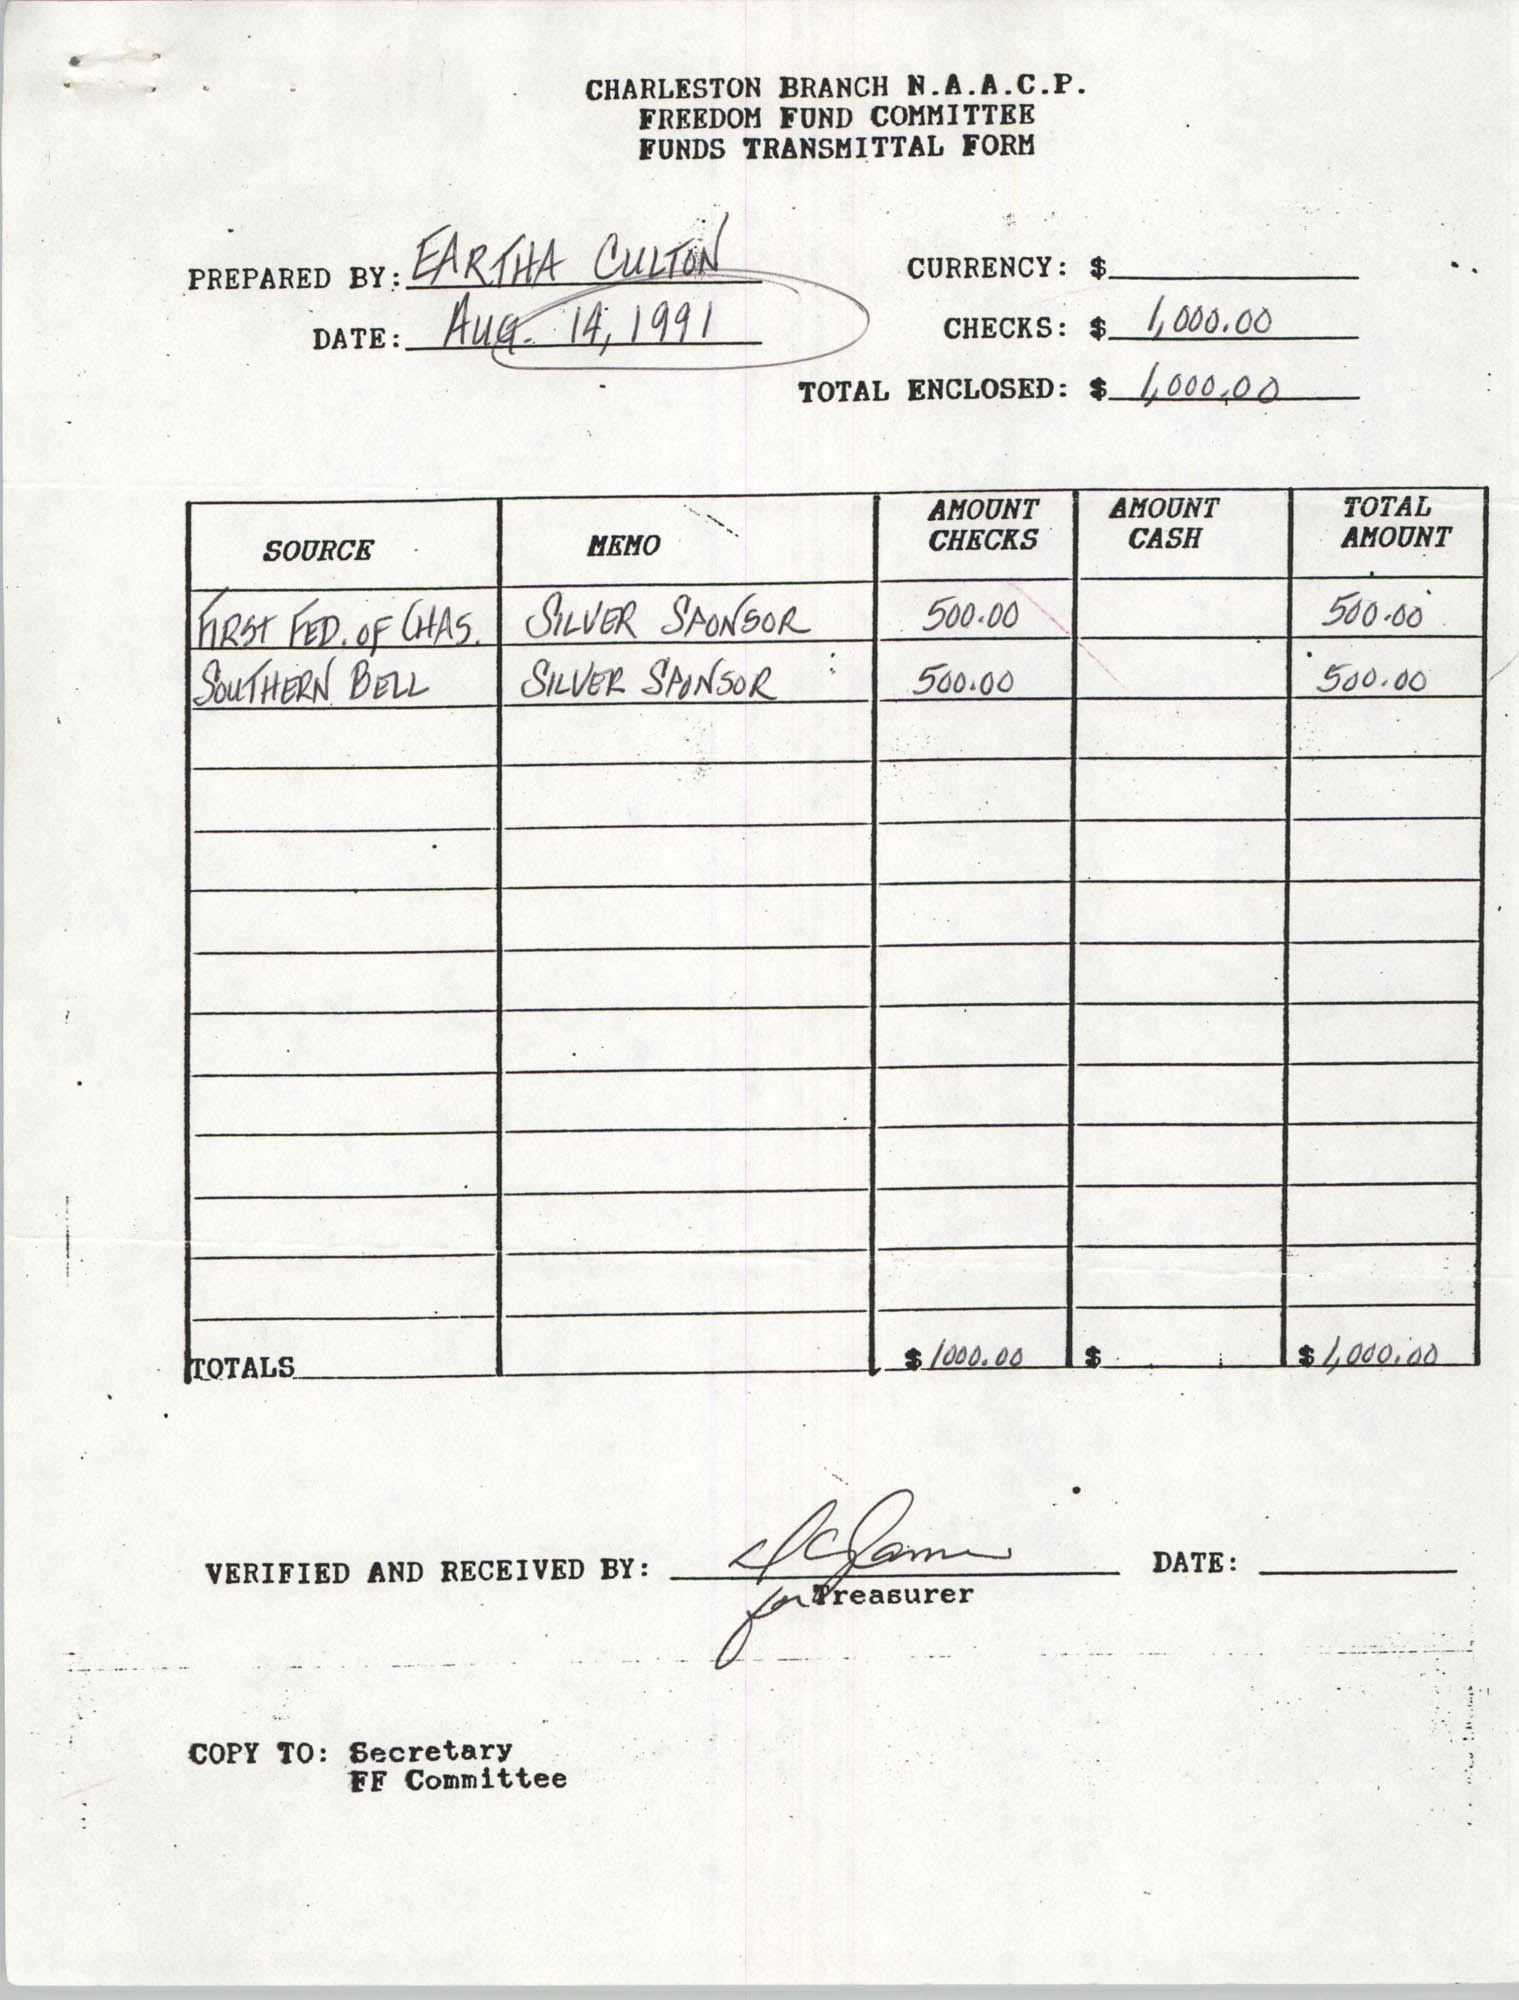 Charleston Branch of the NAACP Funds Transmittal Forms, August 1991, Page 13